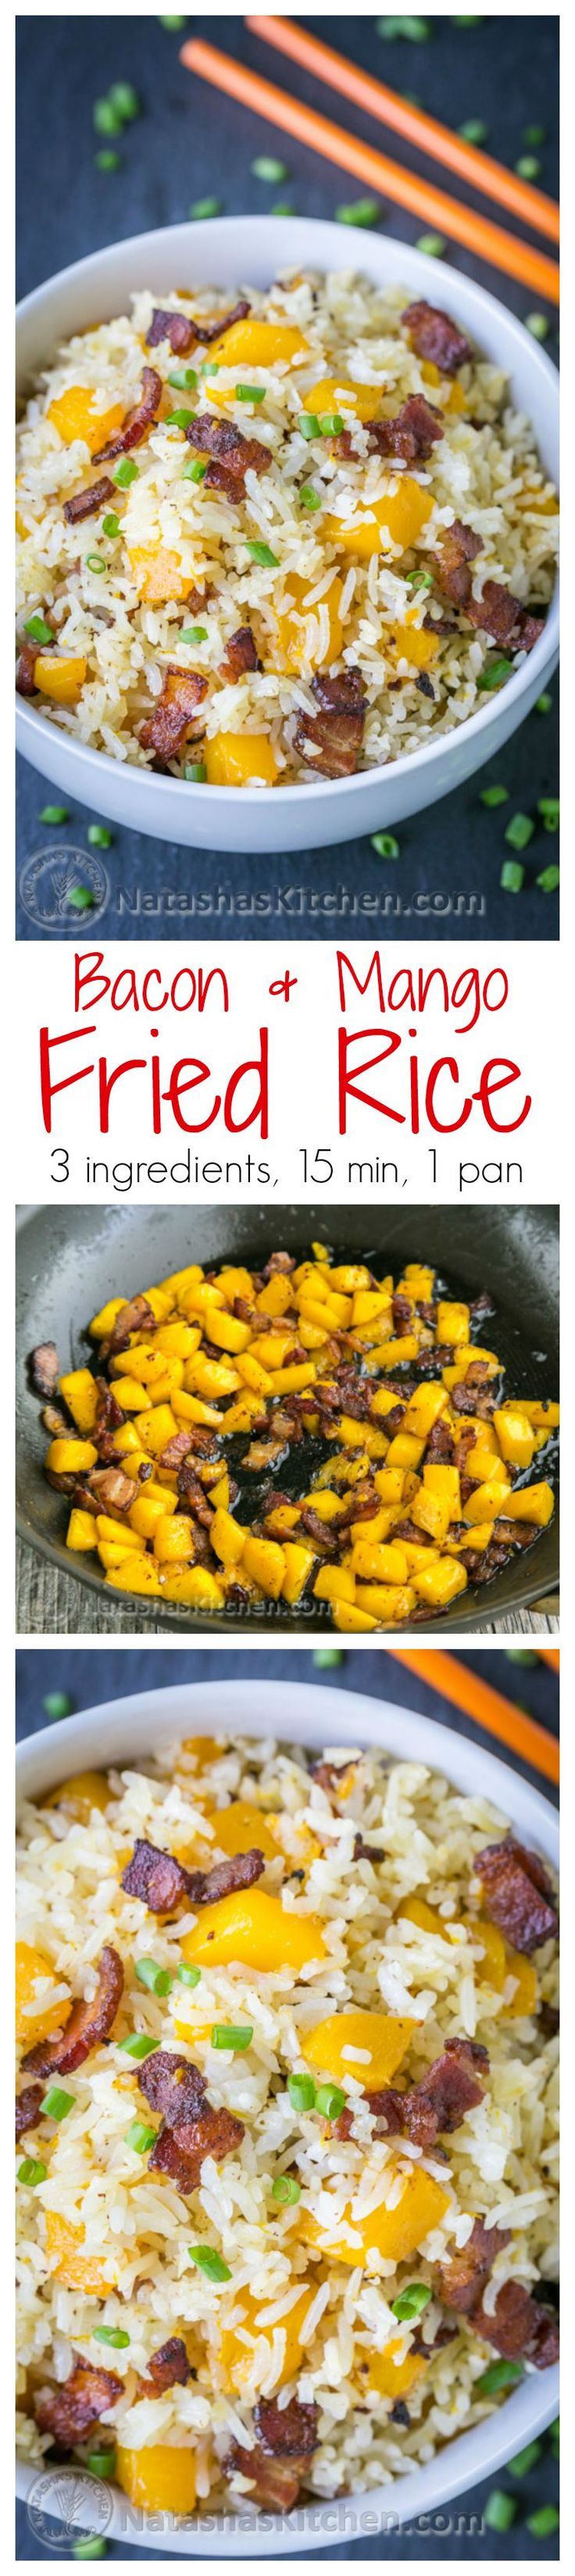 We love this bacon mango fried rice! The mango caramelizes with the crisp bacon - so good! 3 ingredients, 1 pan, 15 min. You can't beat this bacon fried rice! | natashaskitchen.com